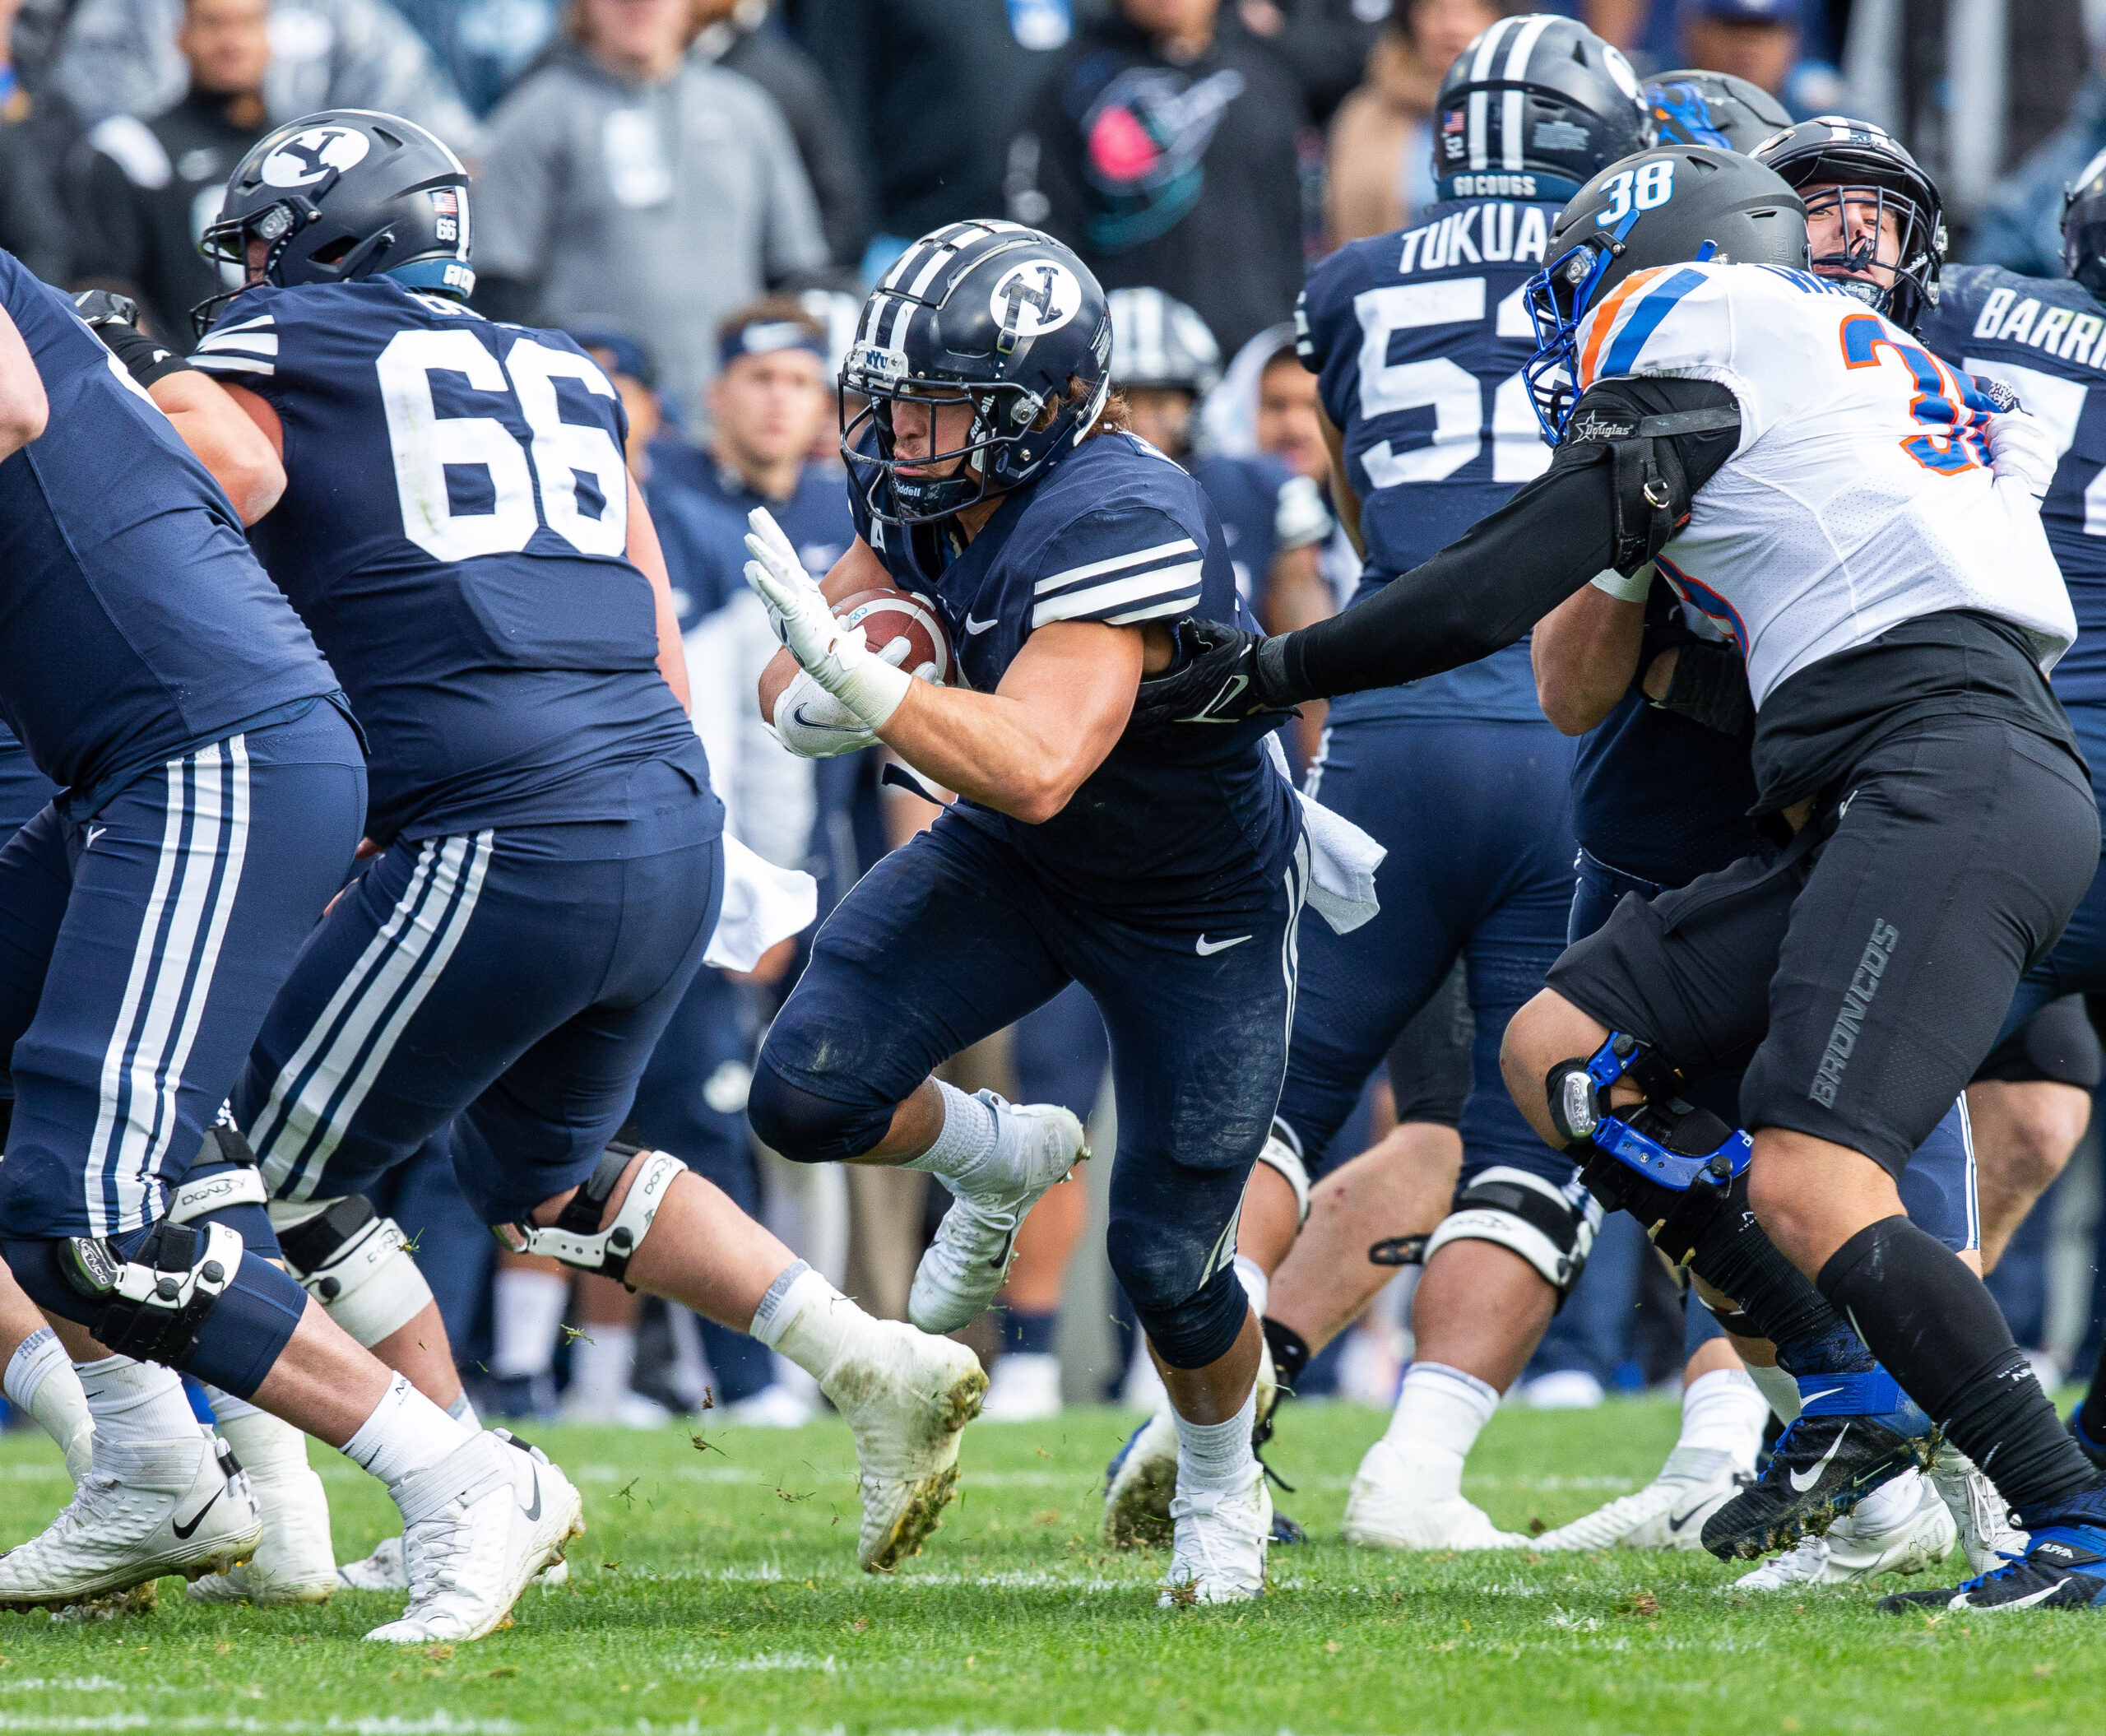 BYU football fumbles away undefeated season 26-17 against Boise State